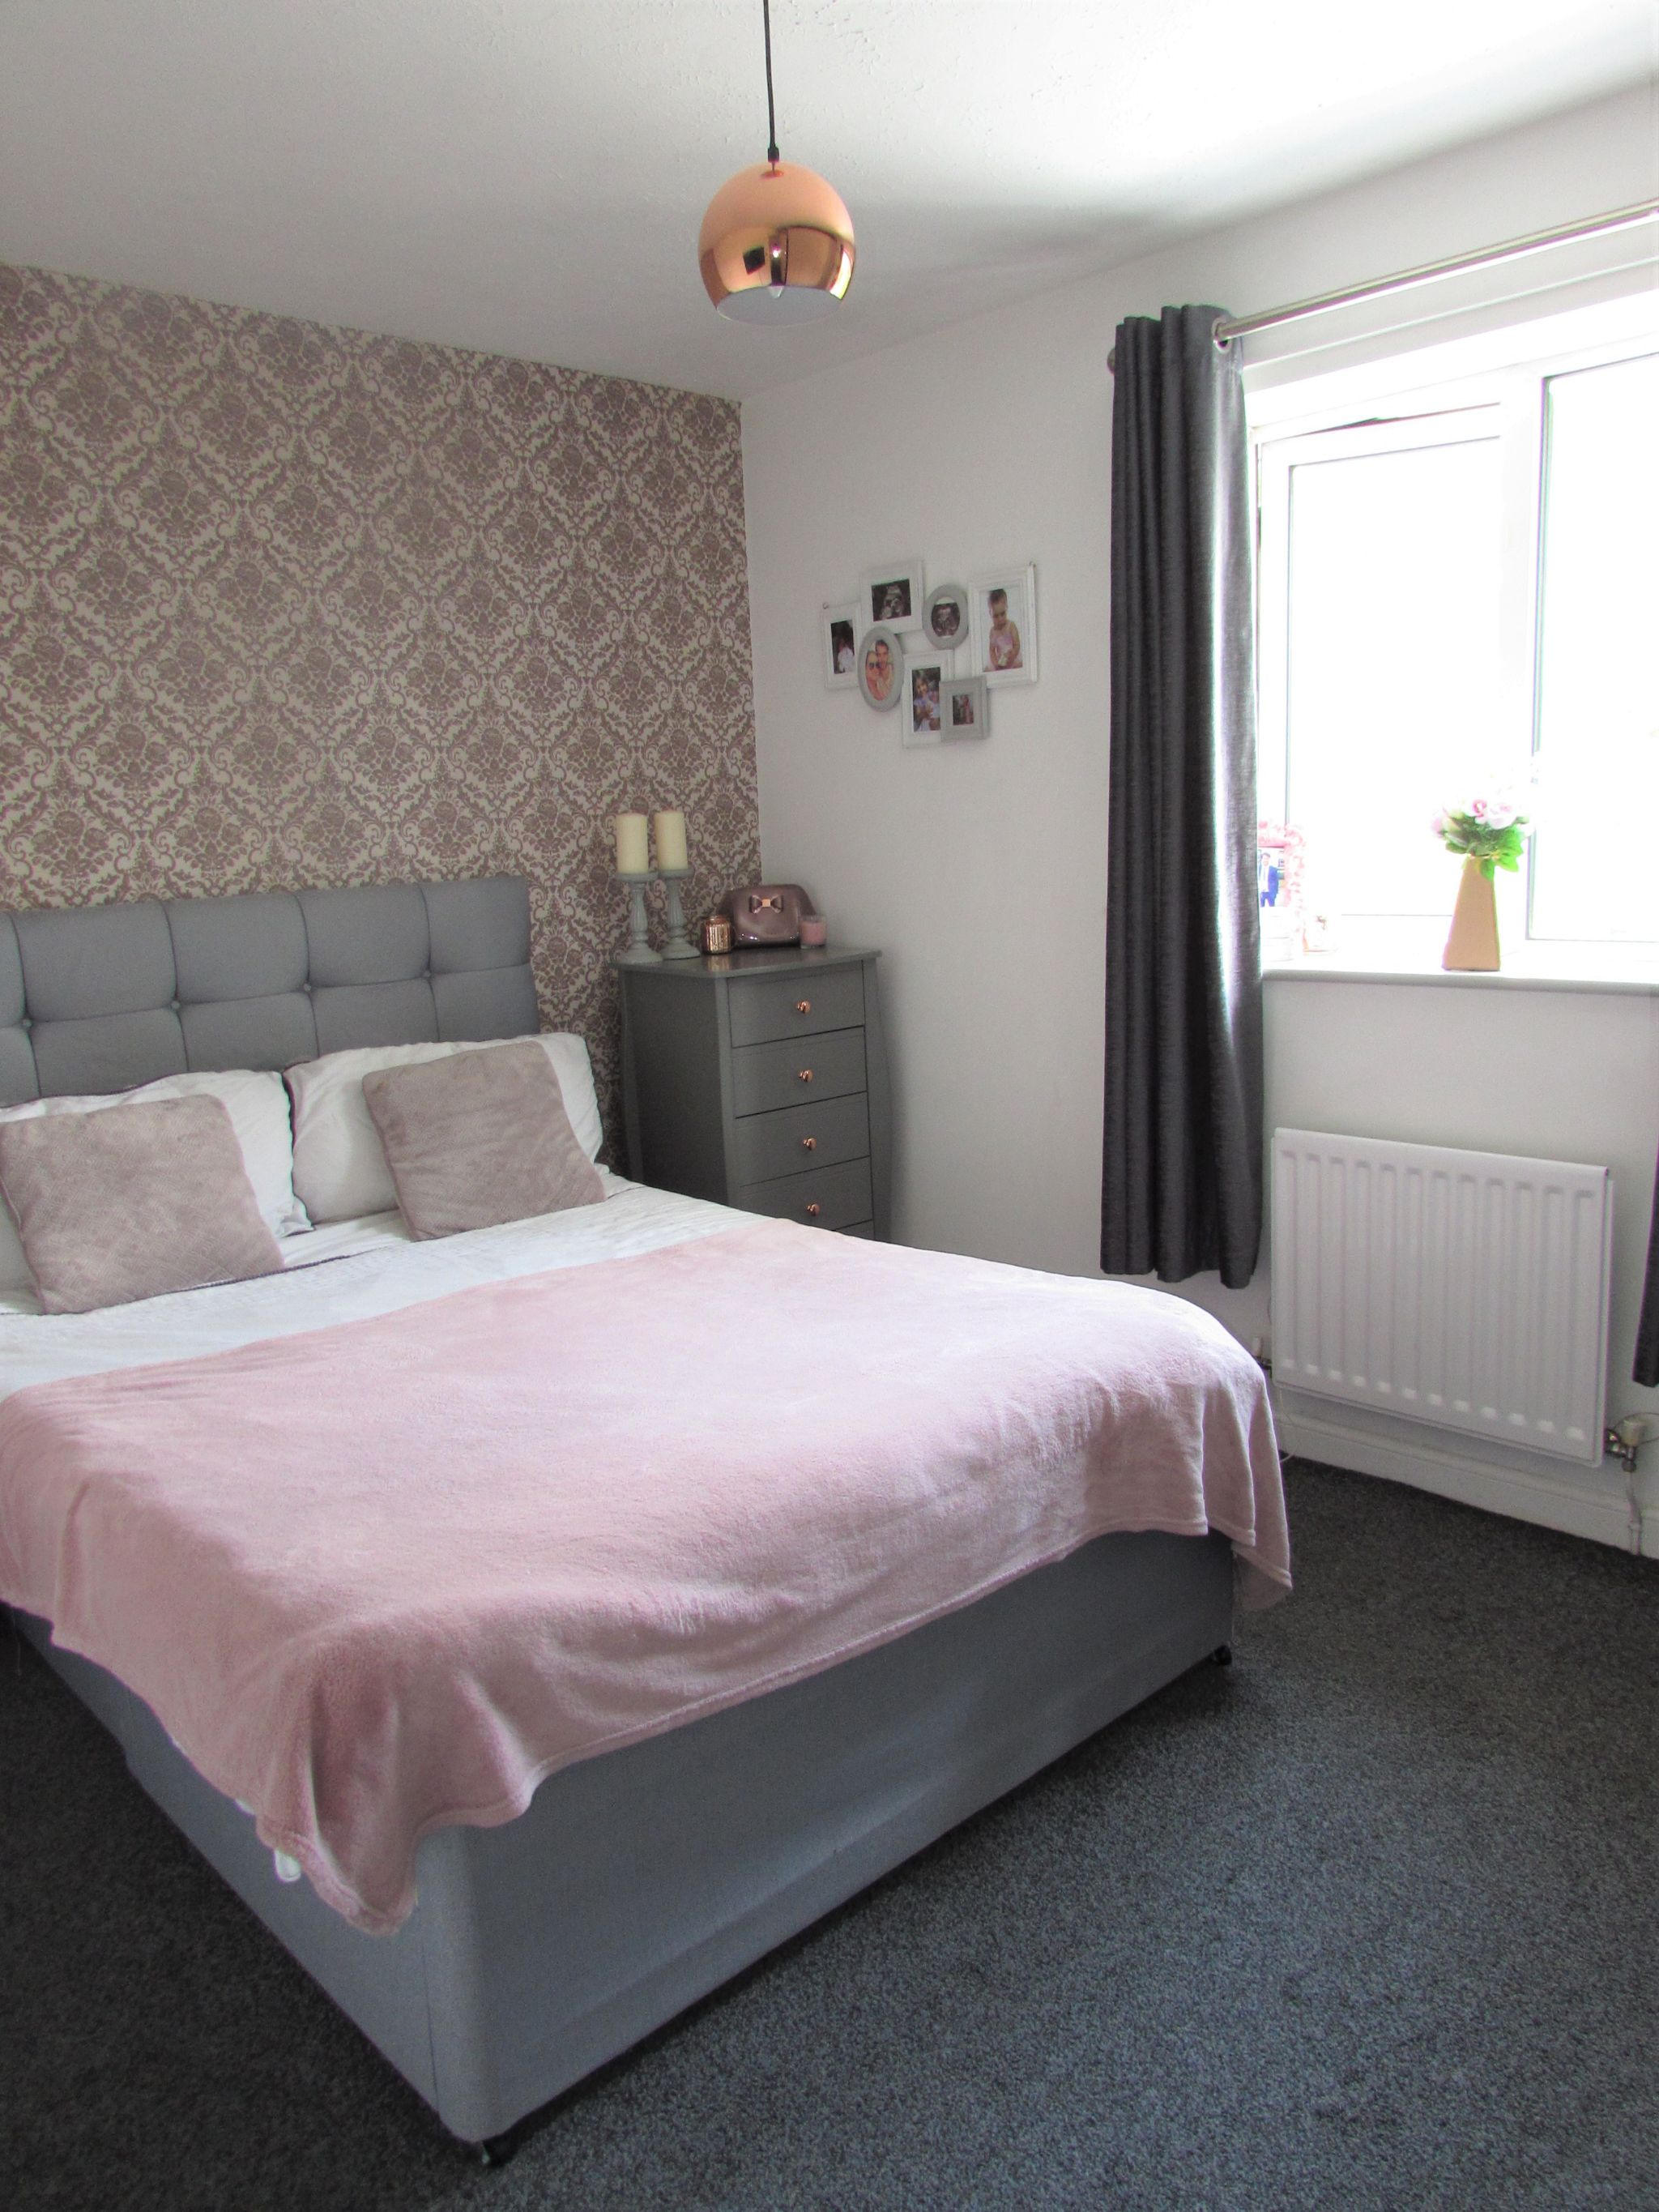 2 Bedroom Semi-detached House For Sale - Master Bedroom